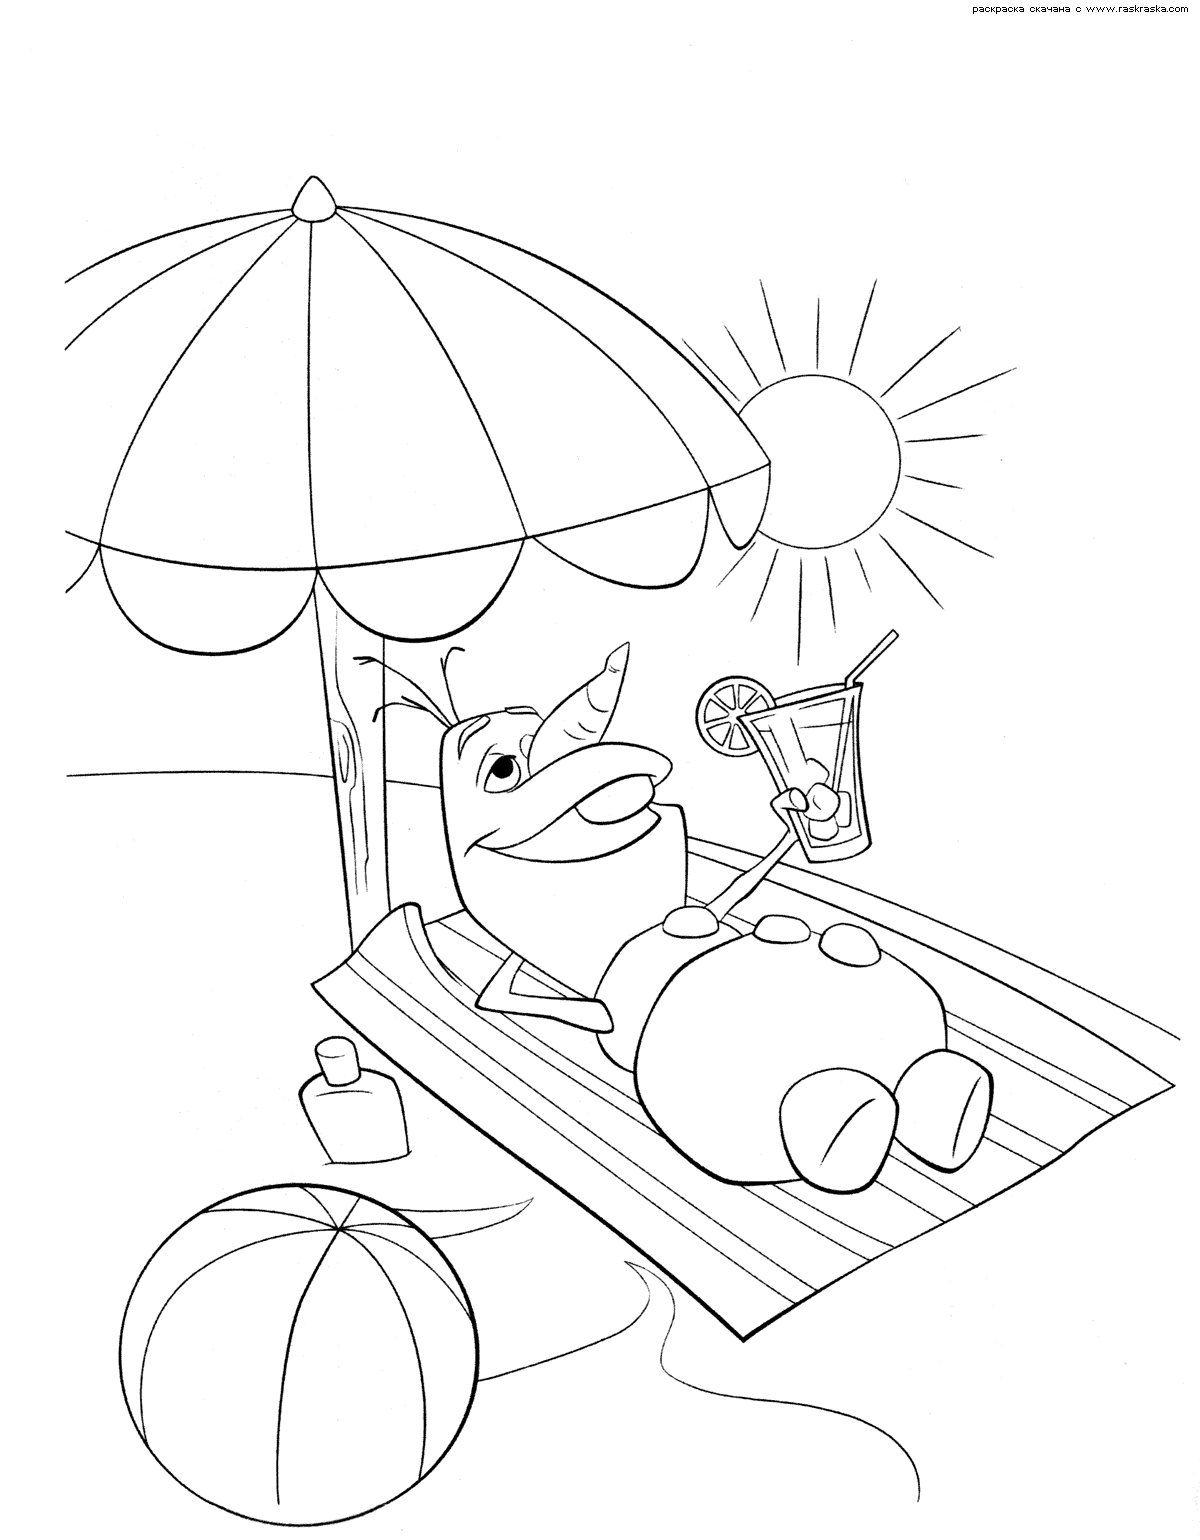 Olaf in Summer Coloring Pages | Free coloring pages for kids ...